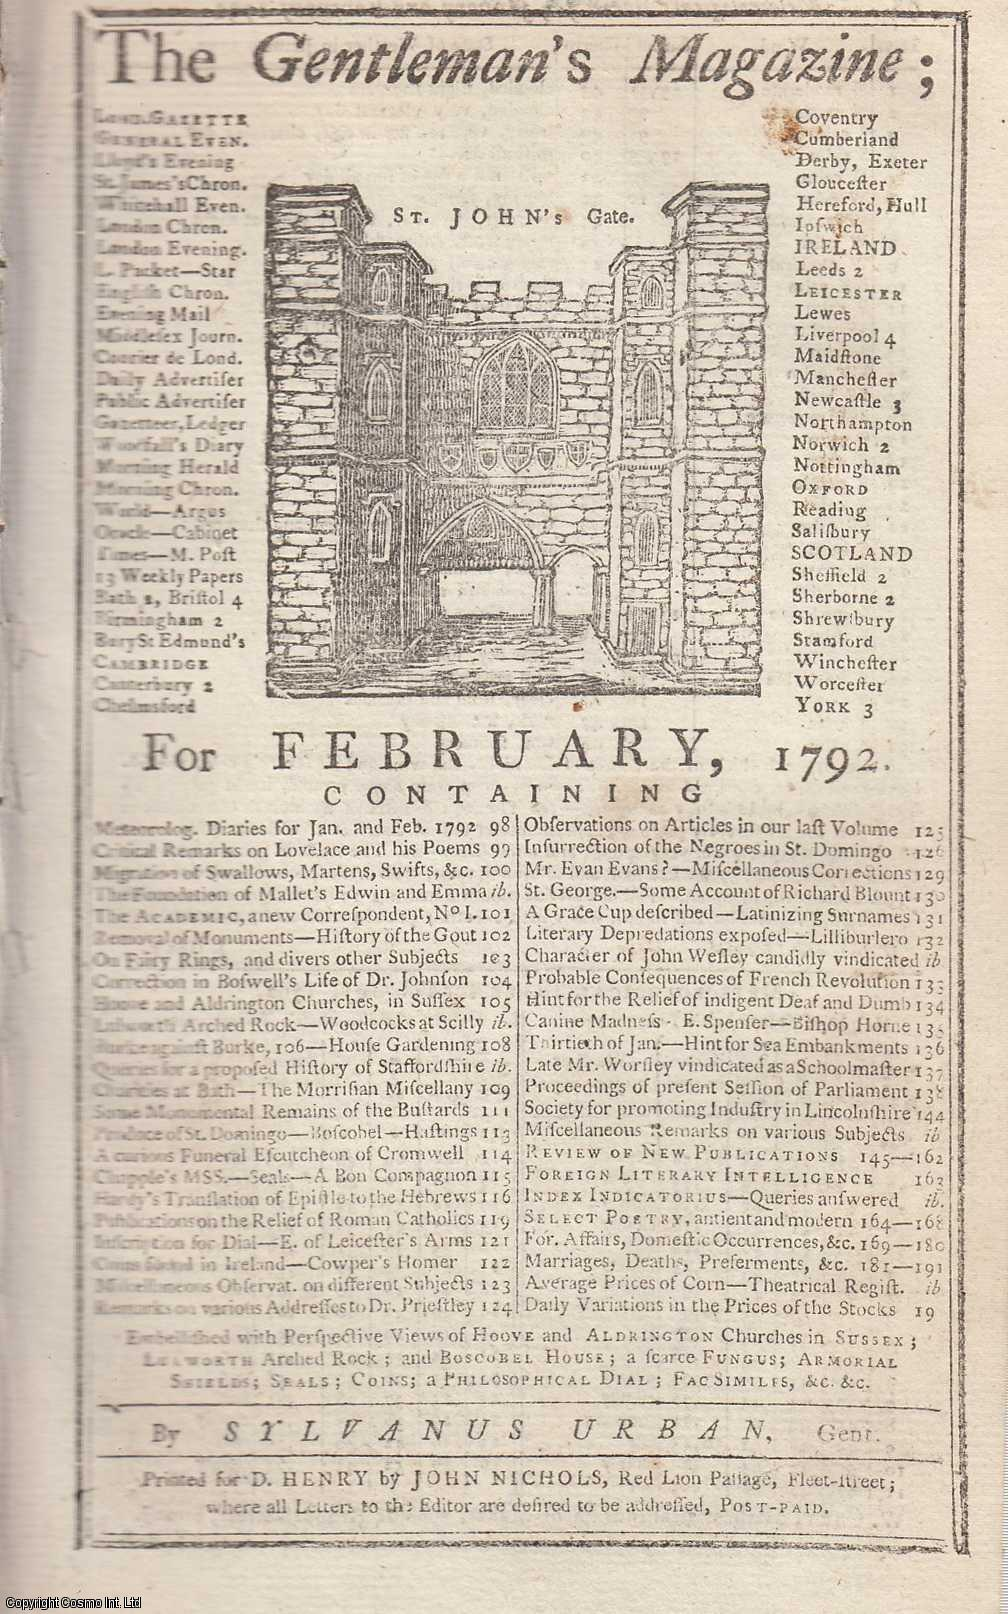 The Gentleman's Magazine for February 1792.  FEATURING One Plate with Armorial Shields, Coins, Seals, Facsimile Signature, etc., Urban, Sylvanus.